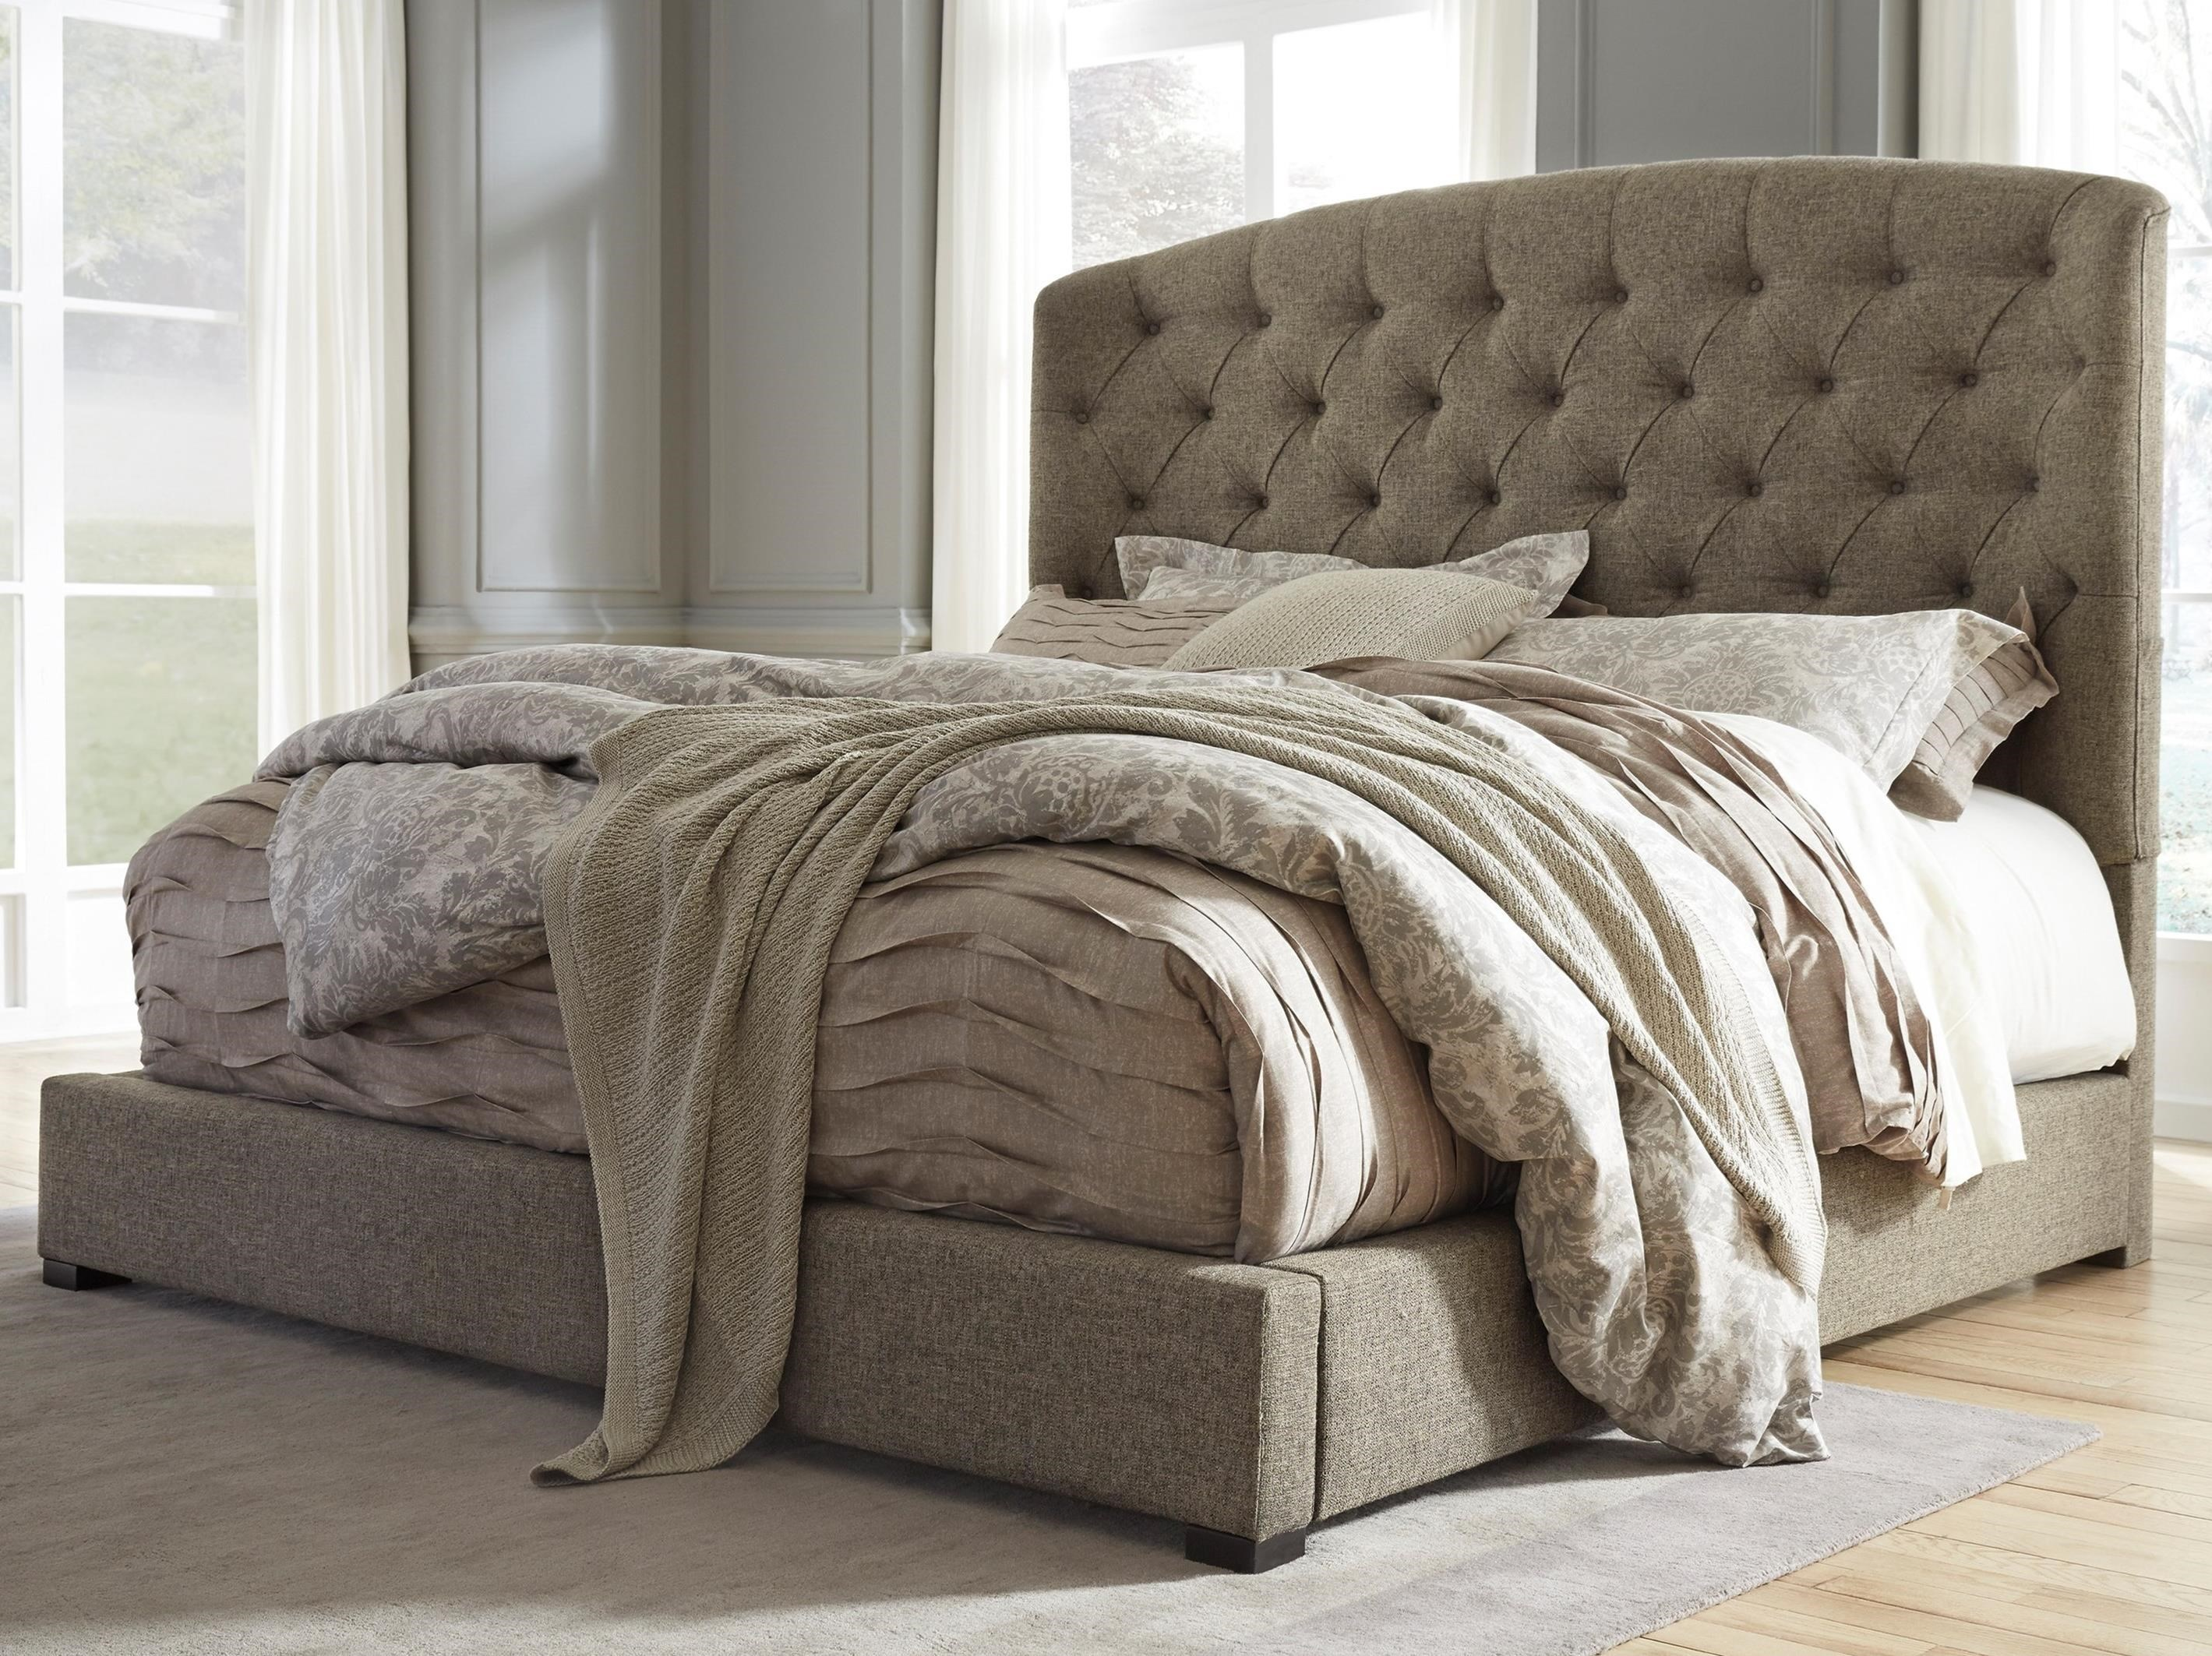 Signature Design By Ashley Gerlane California King Upholstered Bed With  Arched Tufted Headboard And Low Footboard